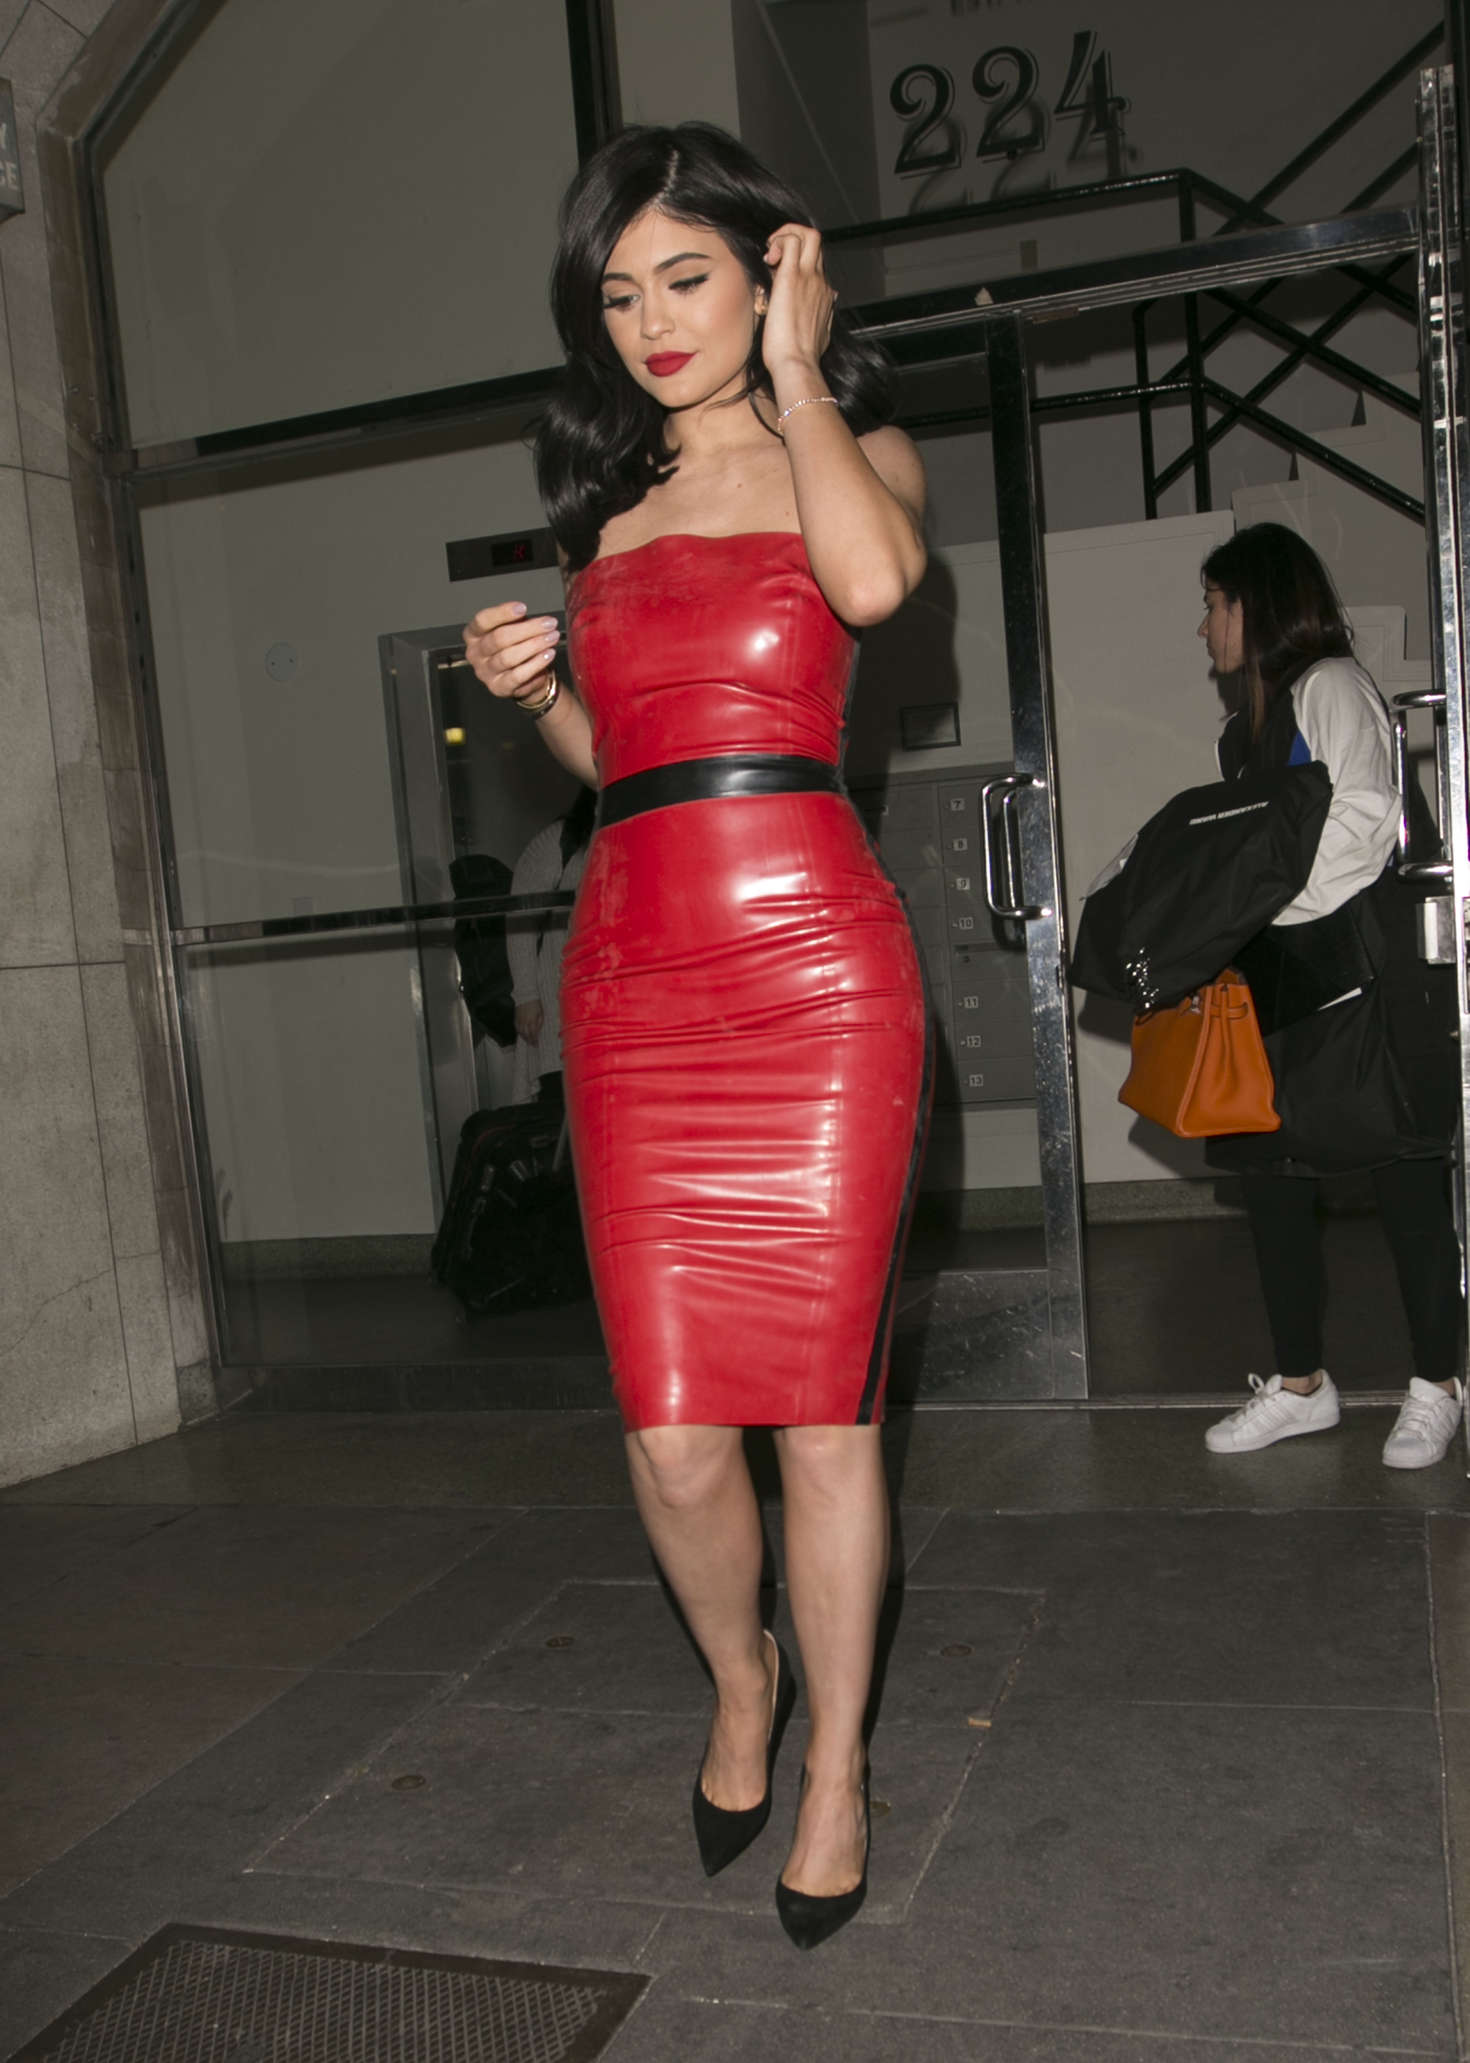 Kylie Jenner In Red Tight Dress -36